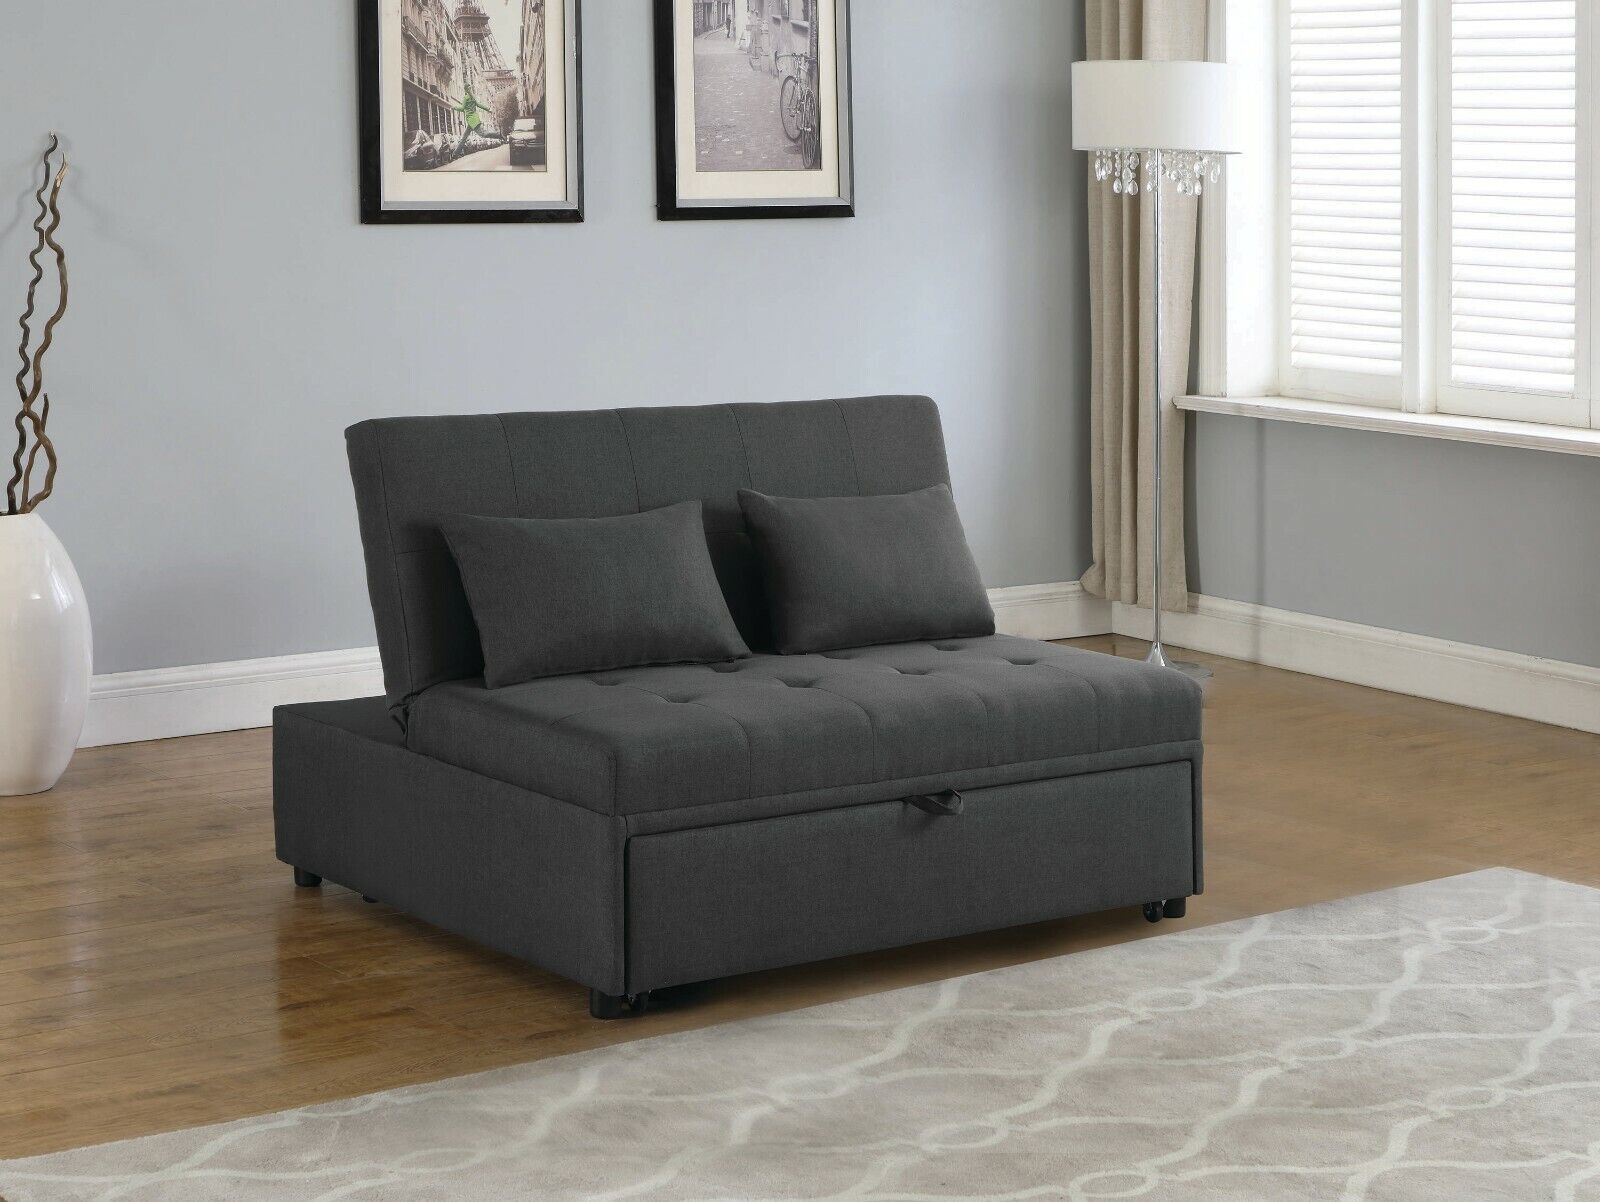 Picture of: Perfect For Dorm 2 Person Grey Linen Sleeper Sofa Bed Living Room Furniture For Sale Online